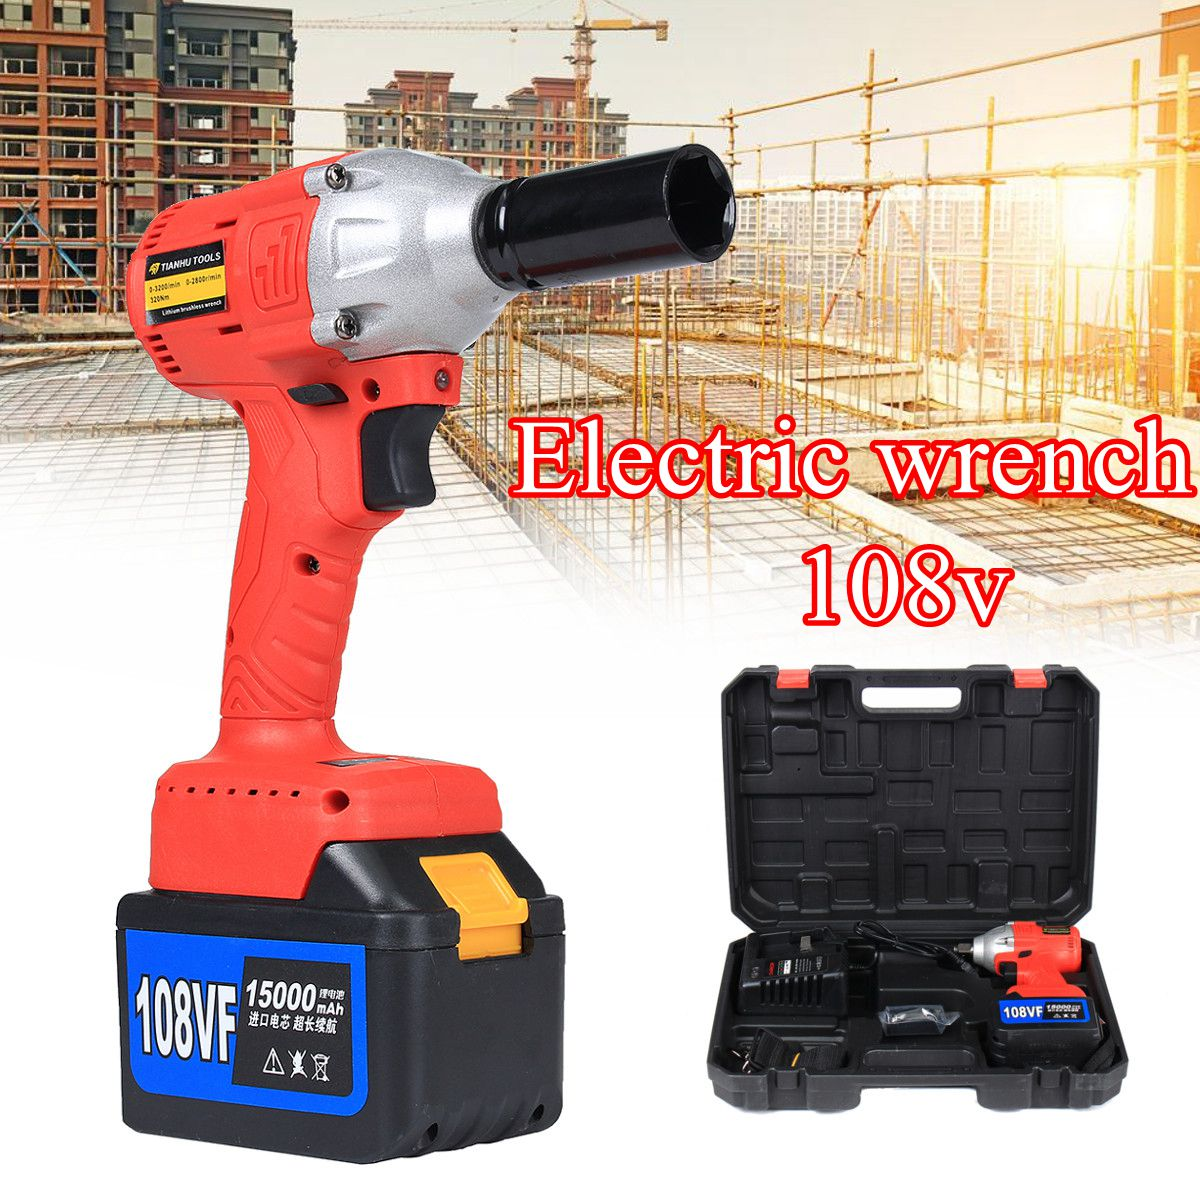 108V 15000mAH 110V-220V Electric Wrench Lithium-Ion Drive Cordless Power Wrench 320Nm Torque US Plug